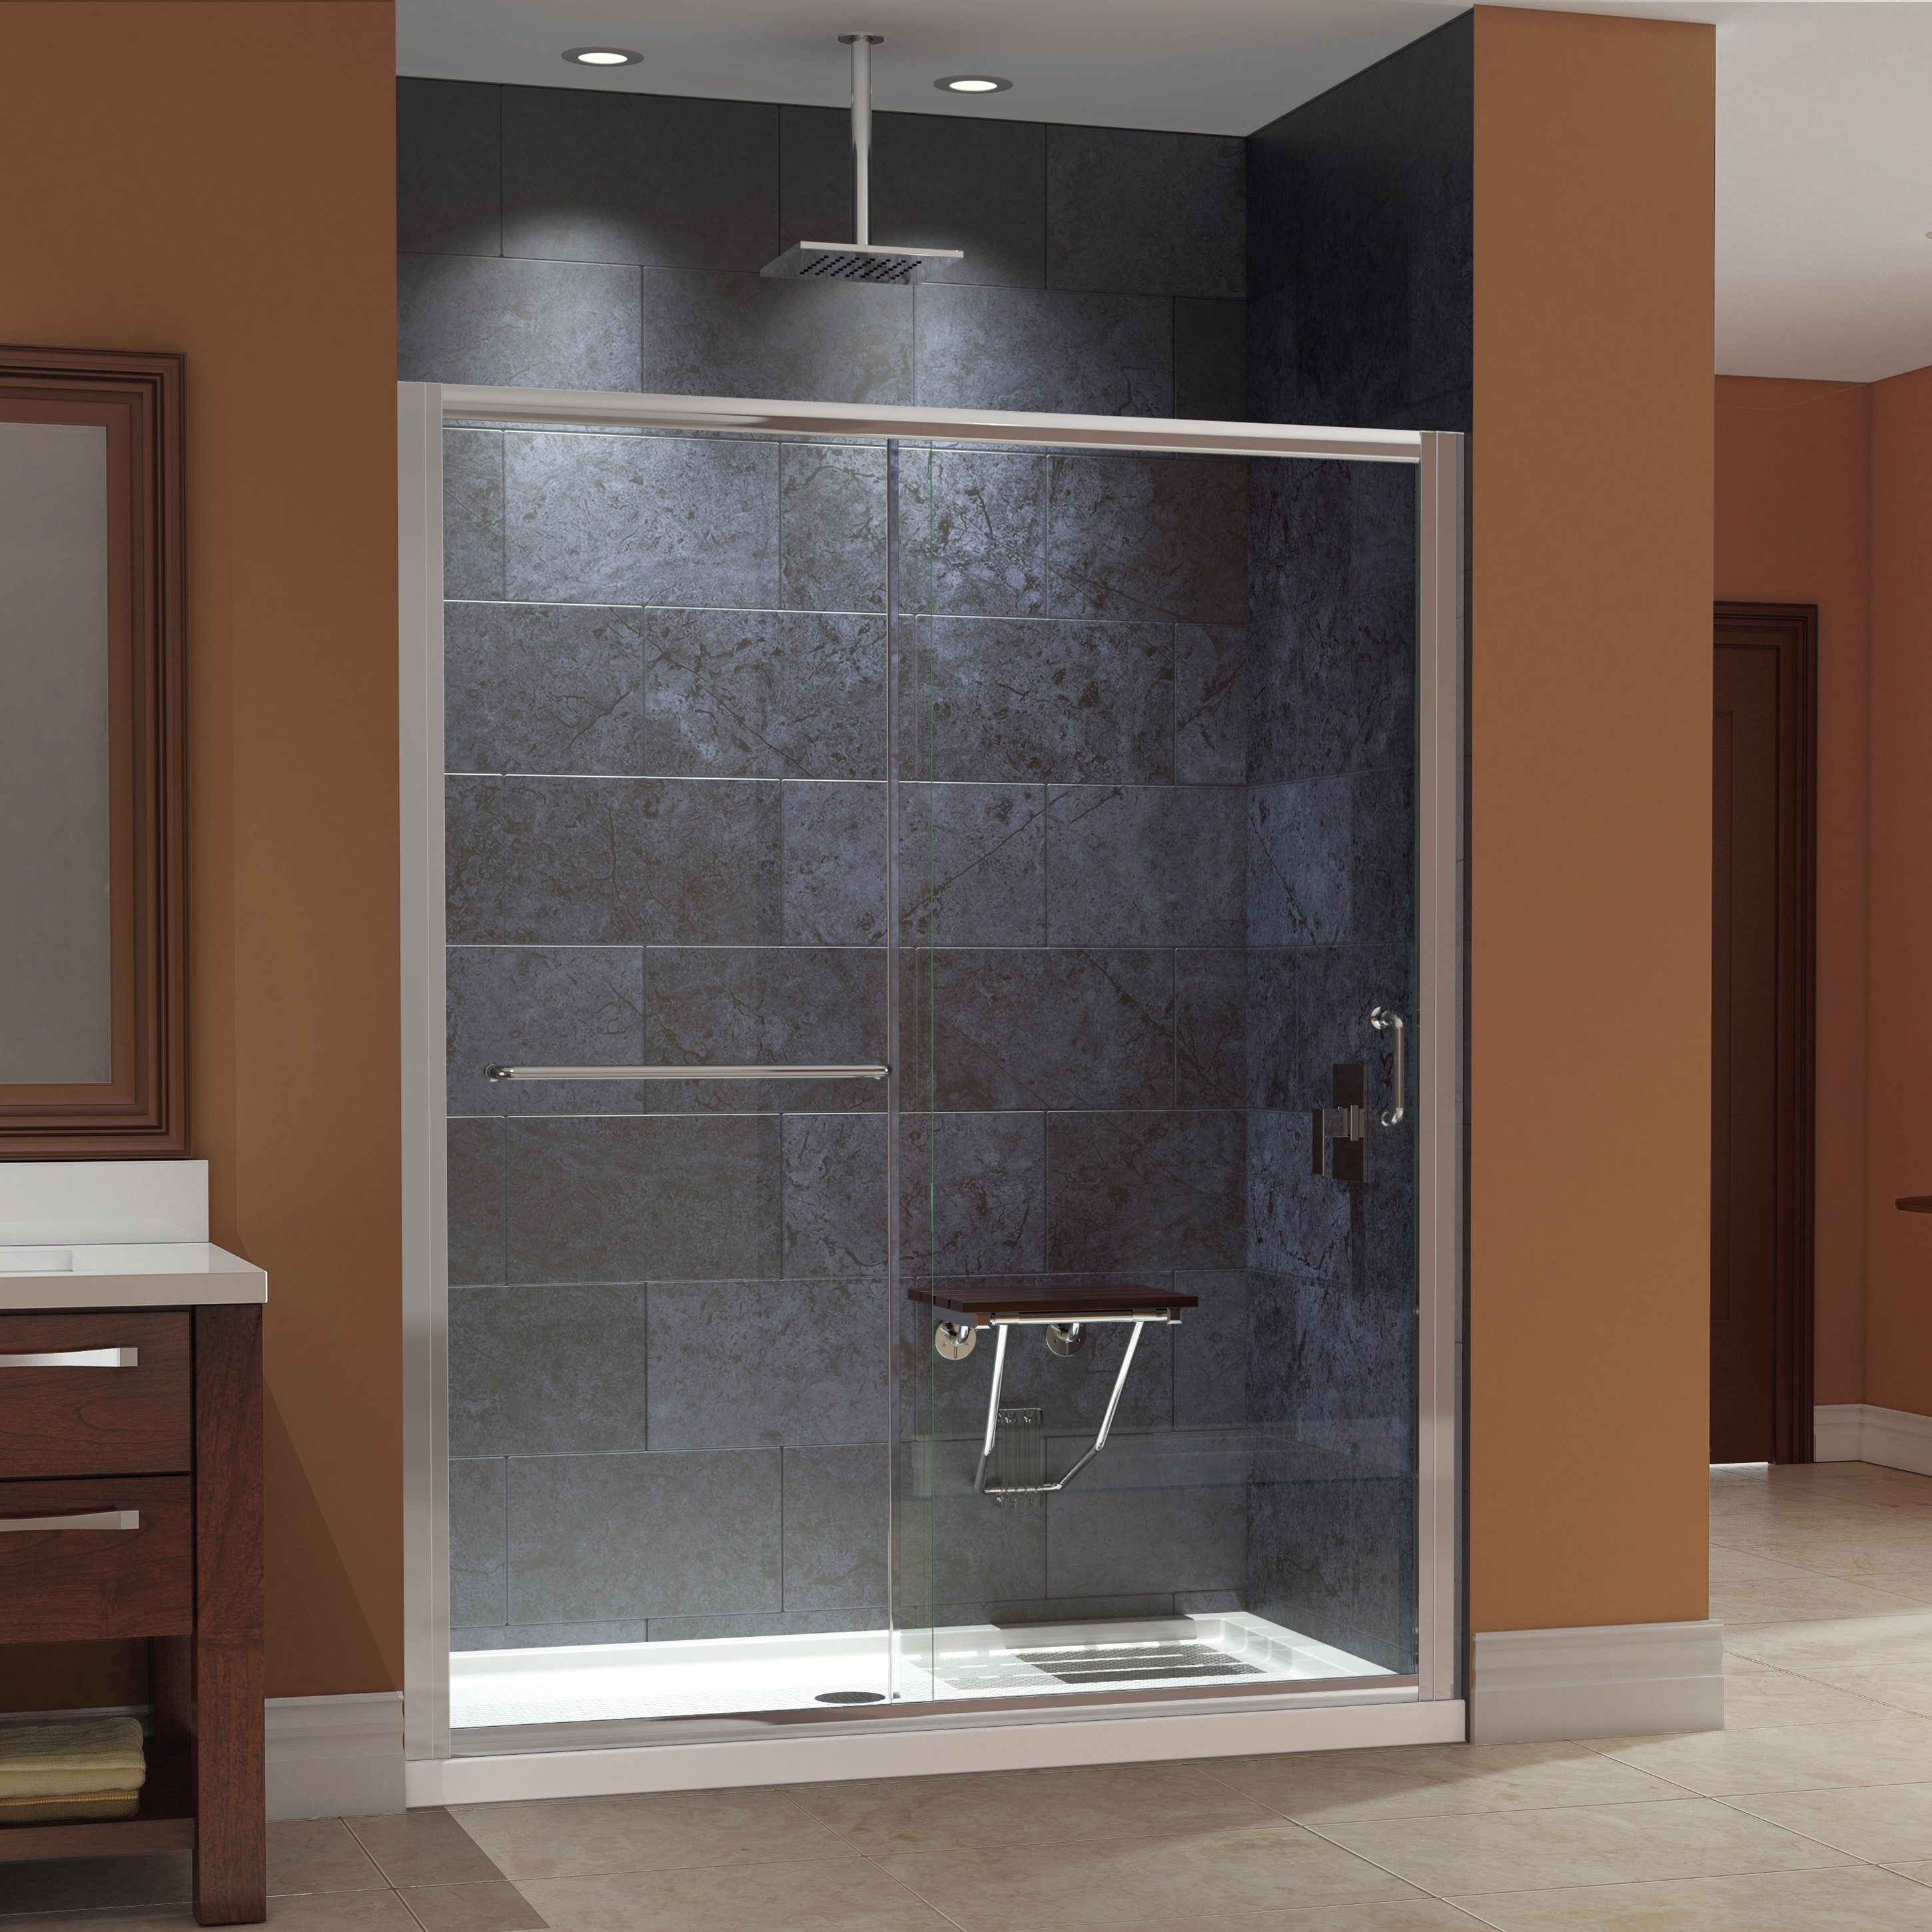 DreamLine Infinity-Z 56 to 60 in. W Shower Door Clear Glass with SlimLine Shower Base 34 in. D x 60 in. W and Teak Seat - Free Shipping Today ... & DreamLine Infinity-Z 56 to 60 in. W Shower Door Clear Glass with ...